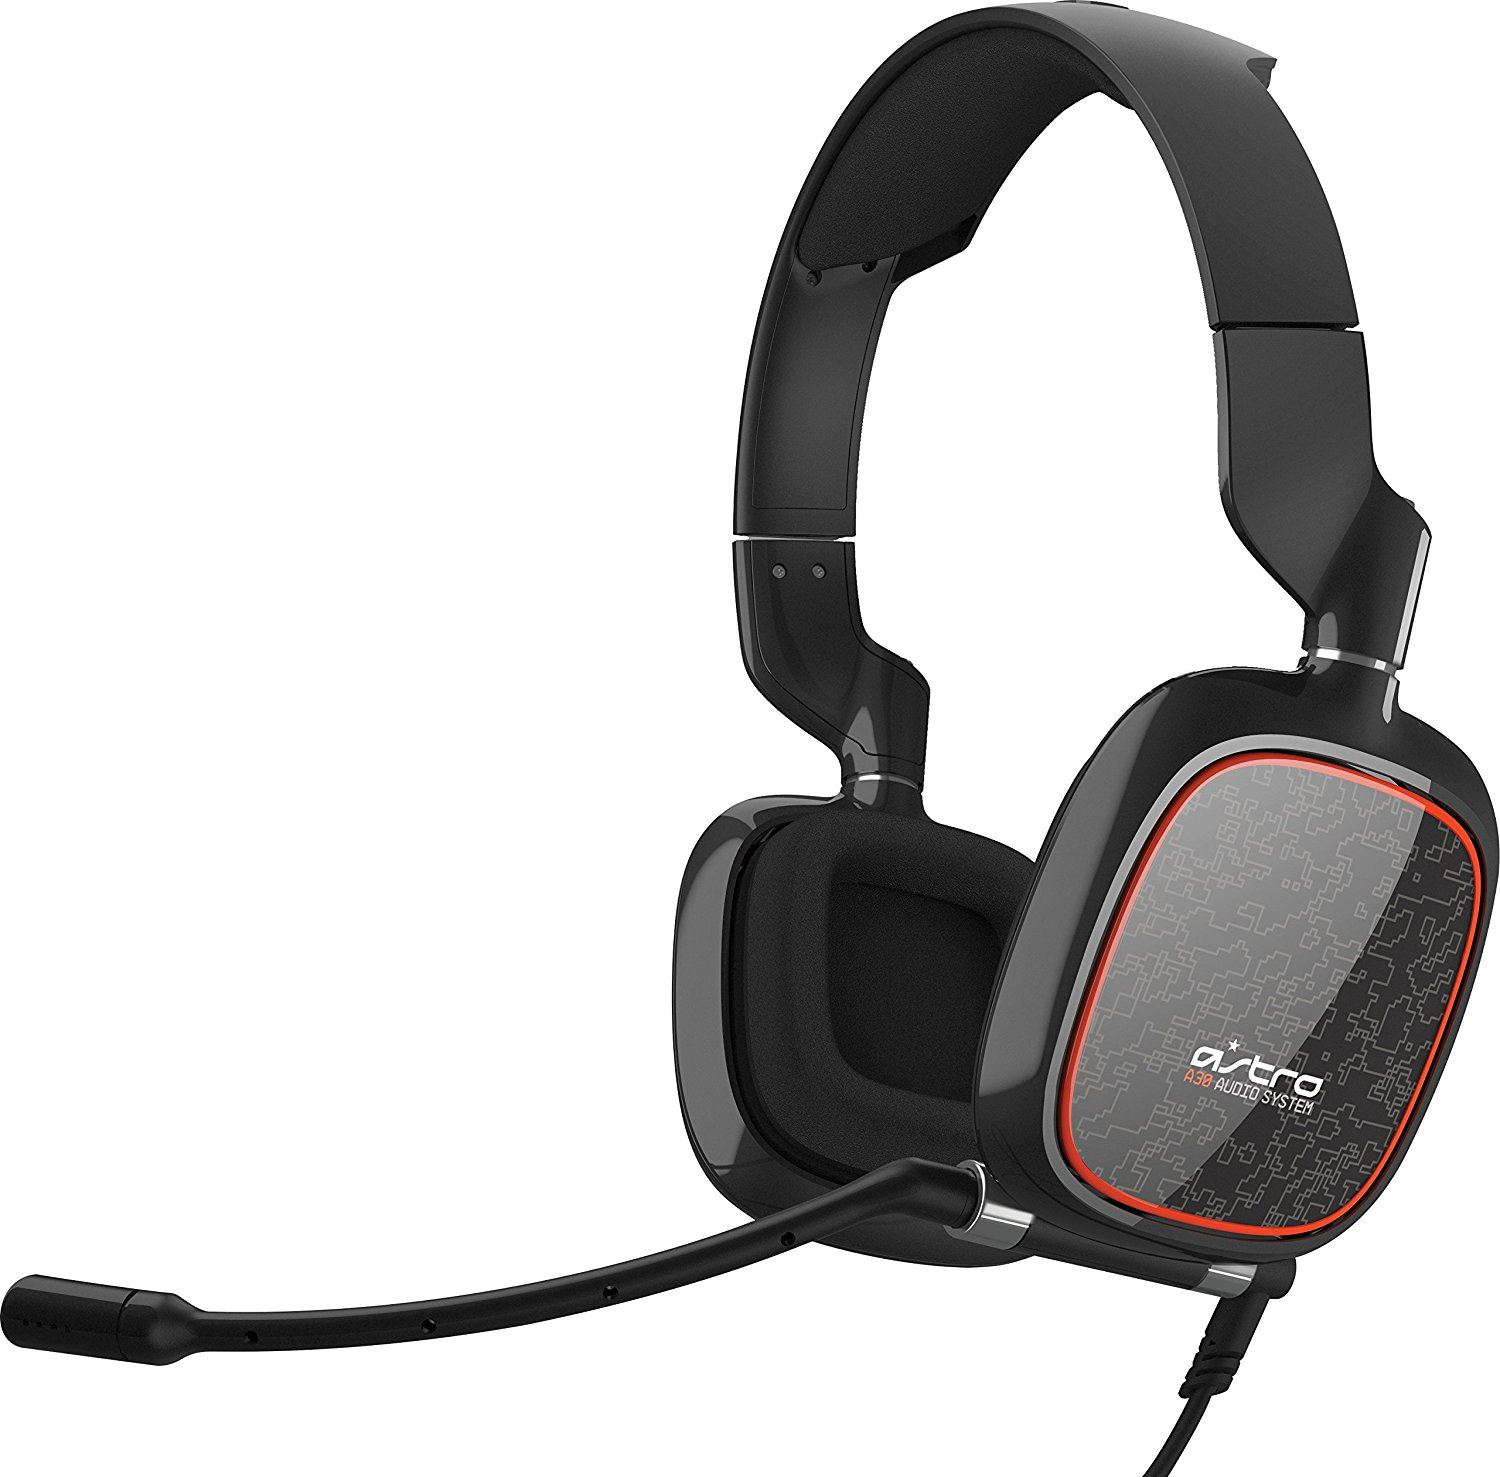 Astro gaming headset mic not working